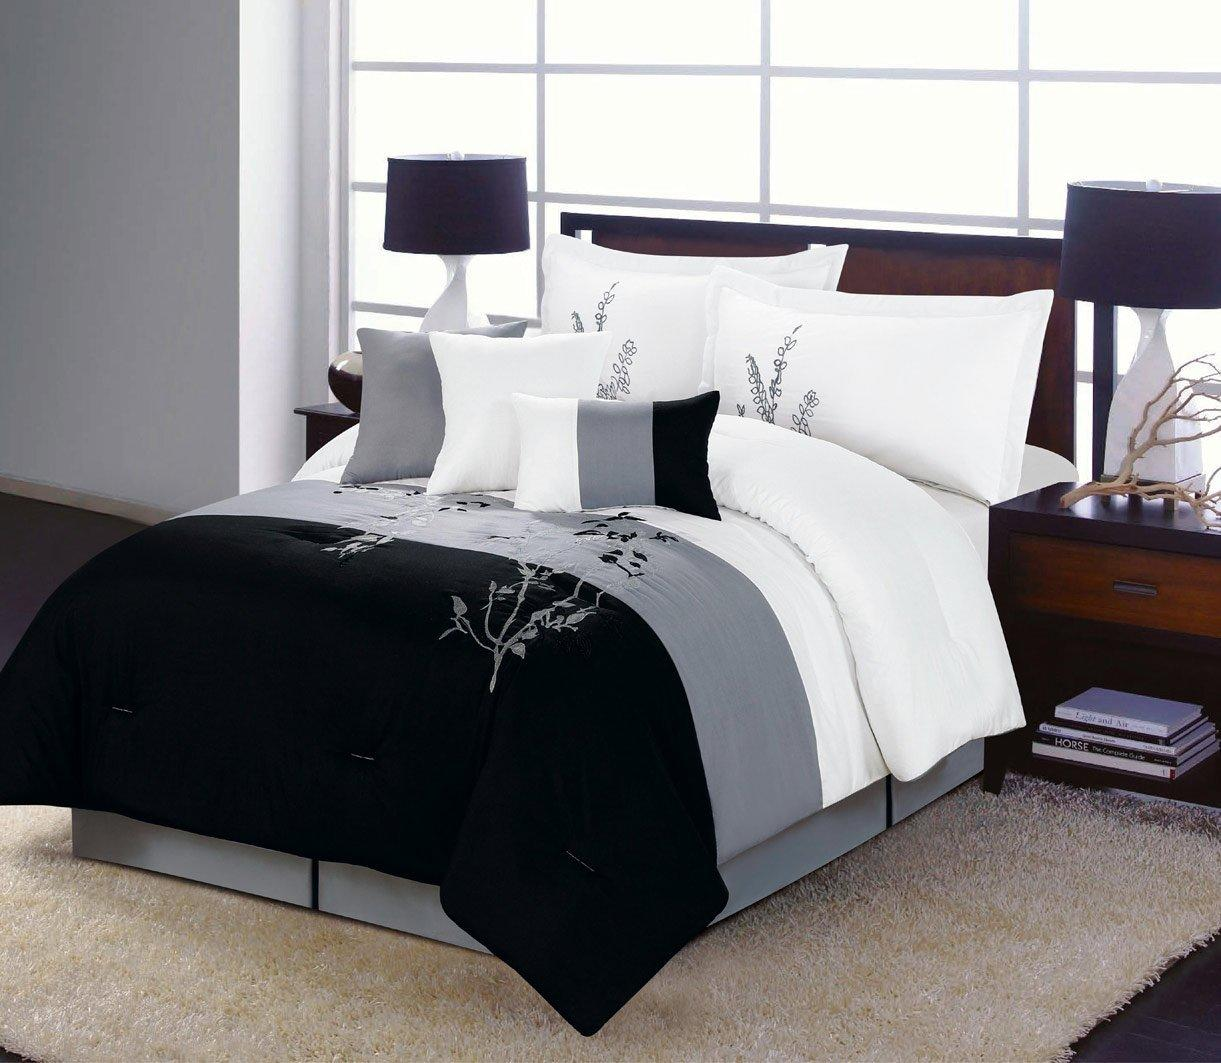 7 Piece Vine Comforter Set Black White From Amazon